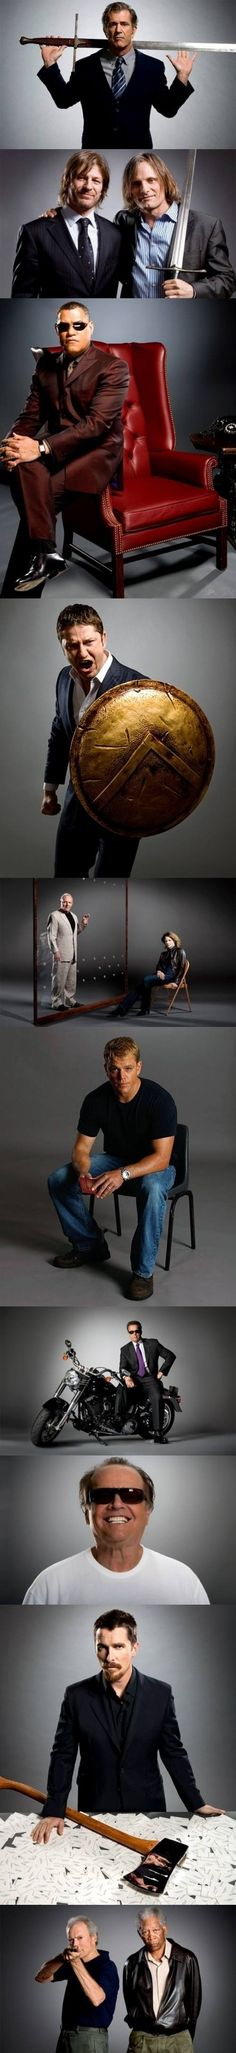 Famous actors and their iconic roles (my personal favorite, Viggo Mortenson)